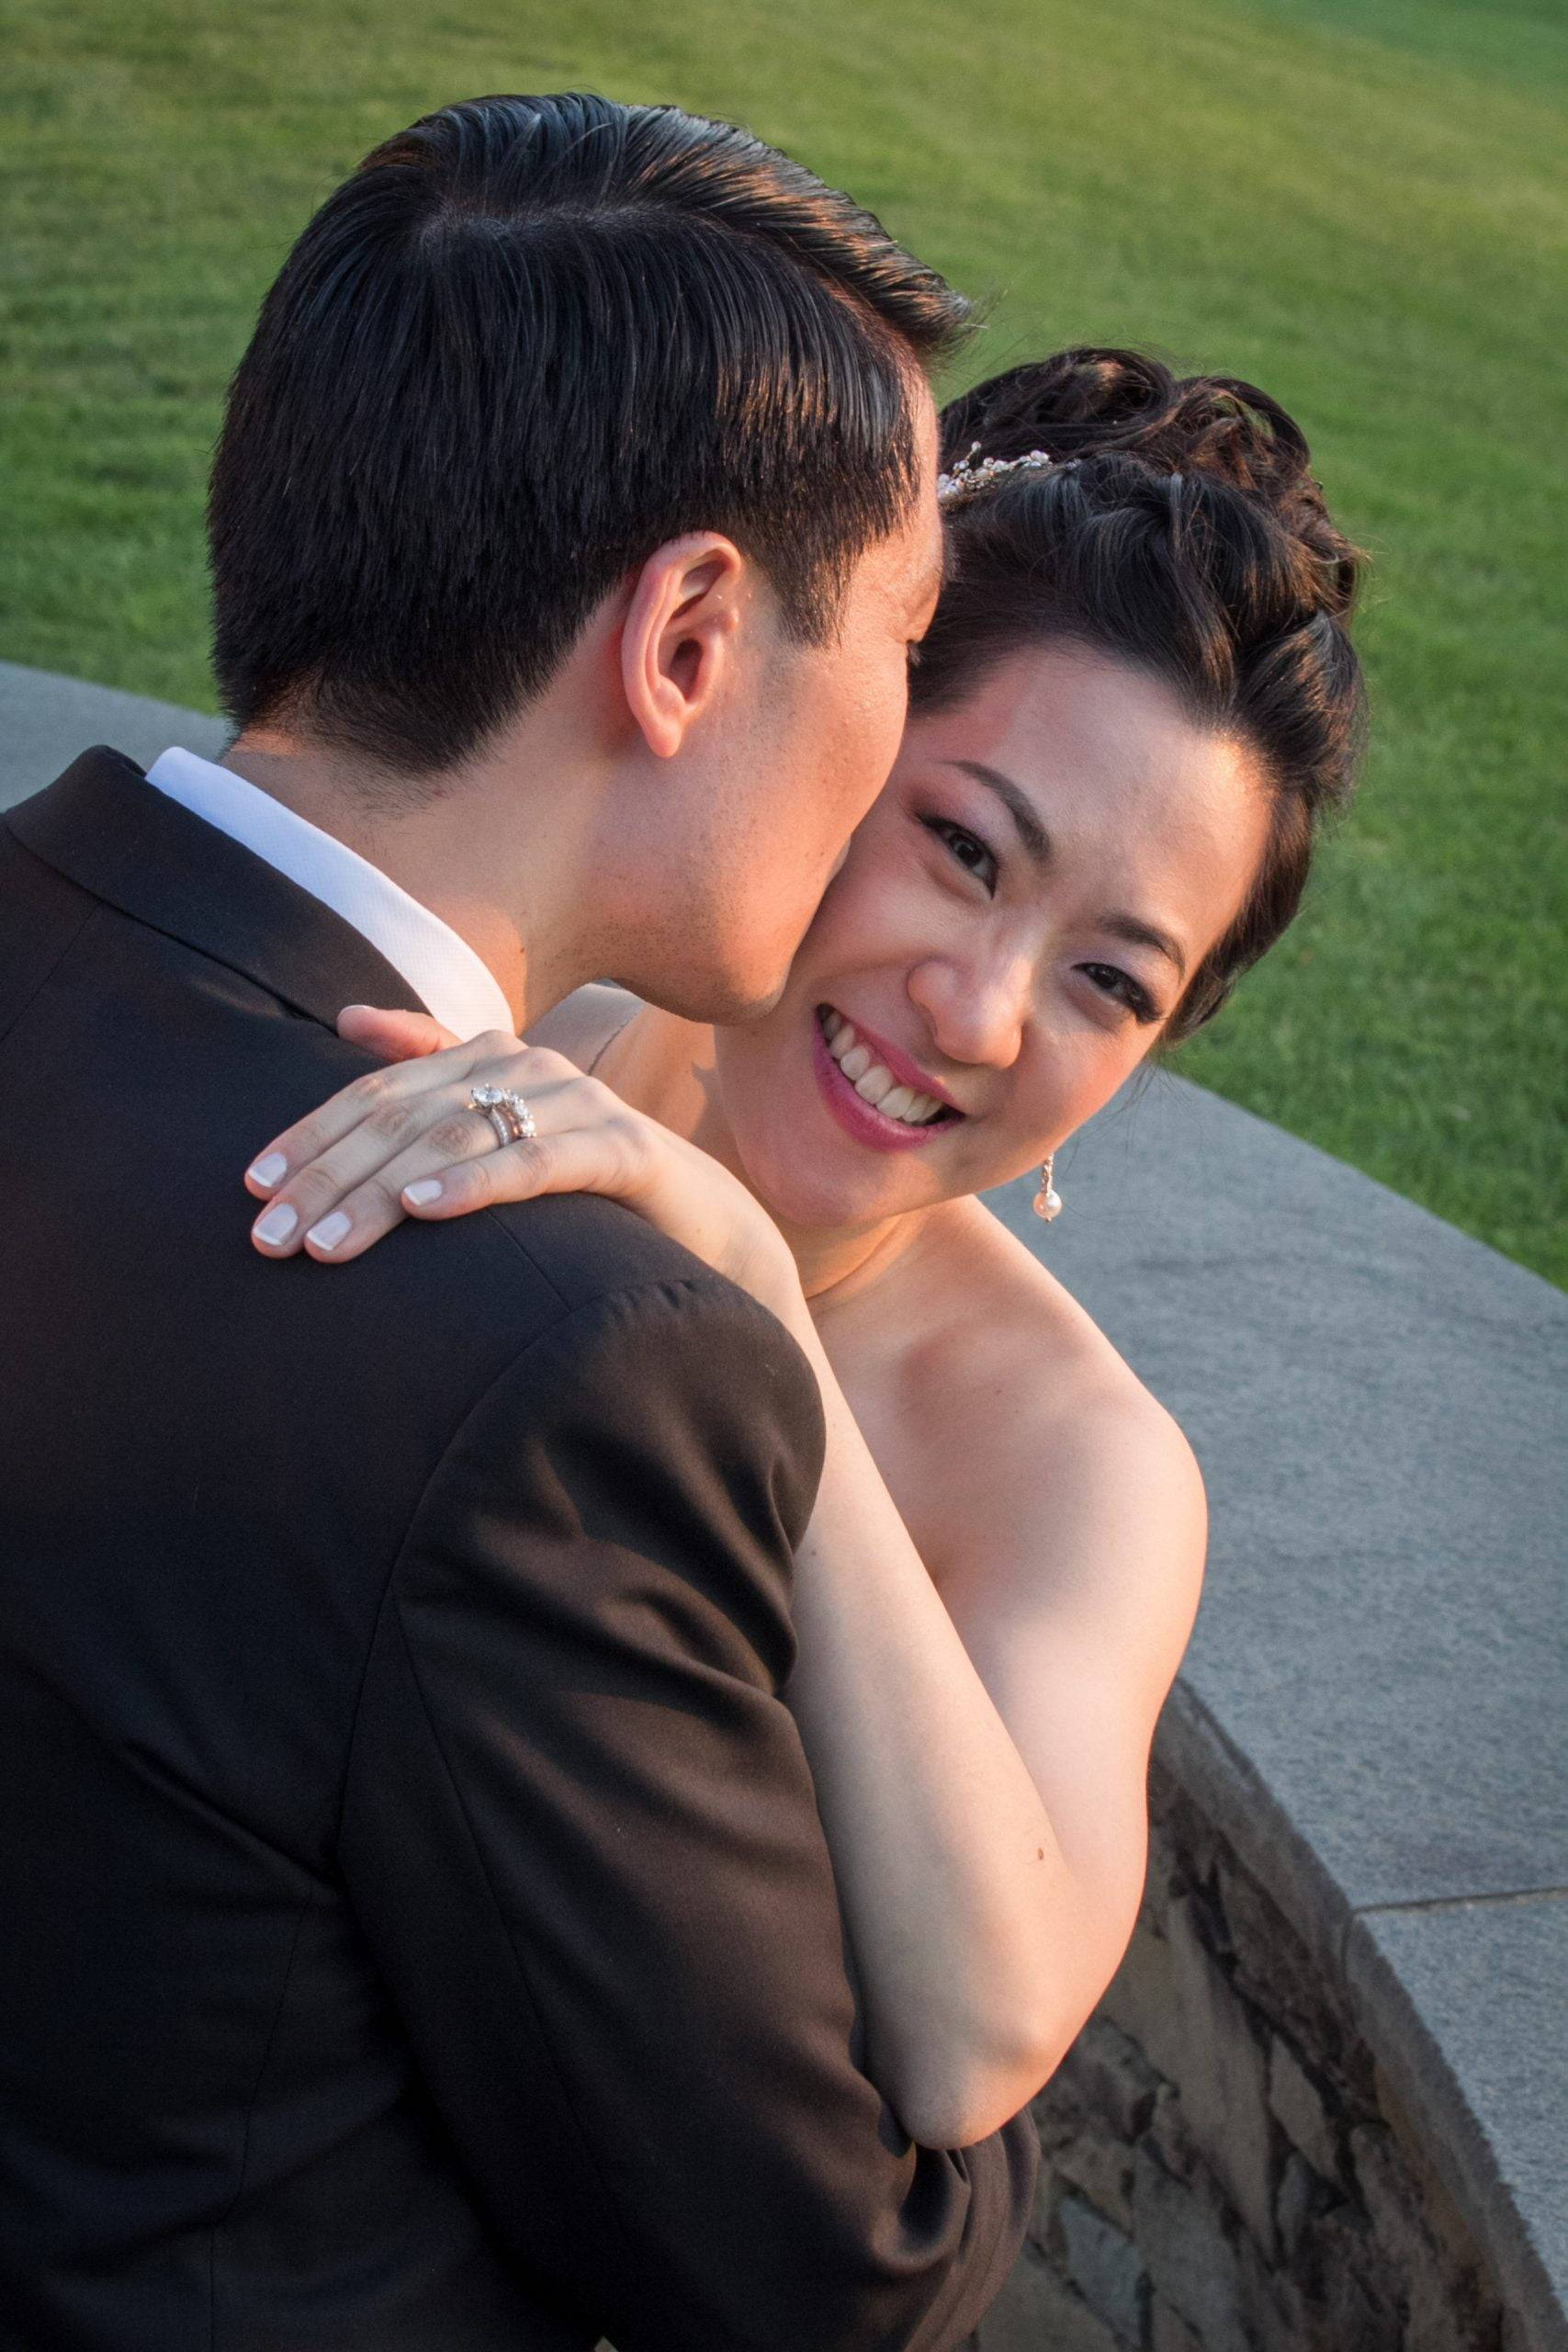 Brooklake smiling bride gets a kiss from groom